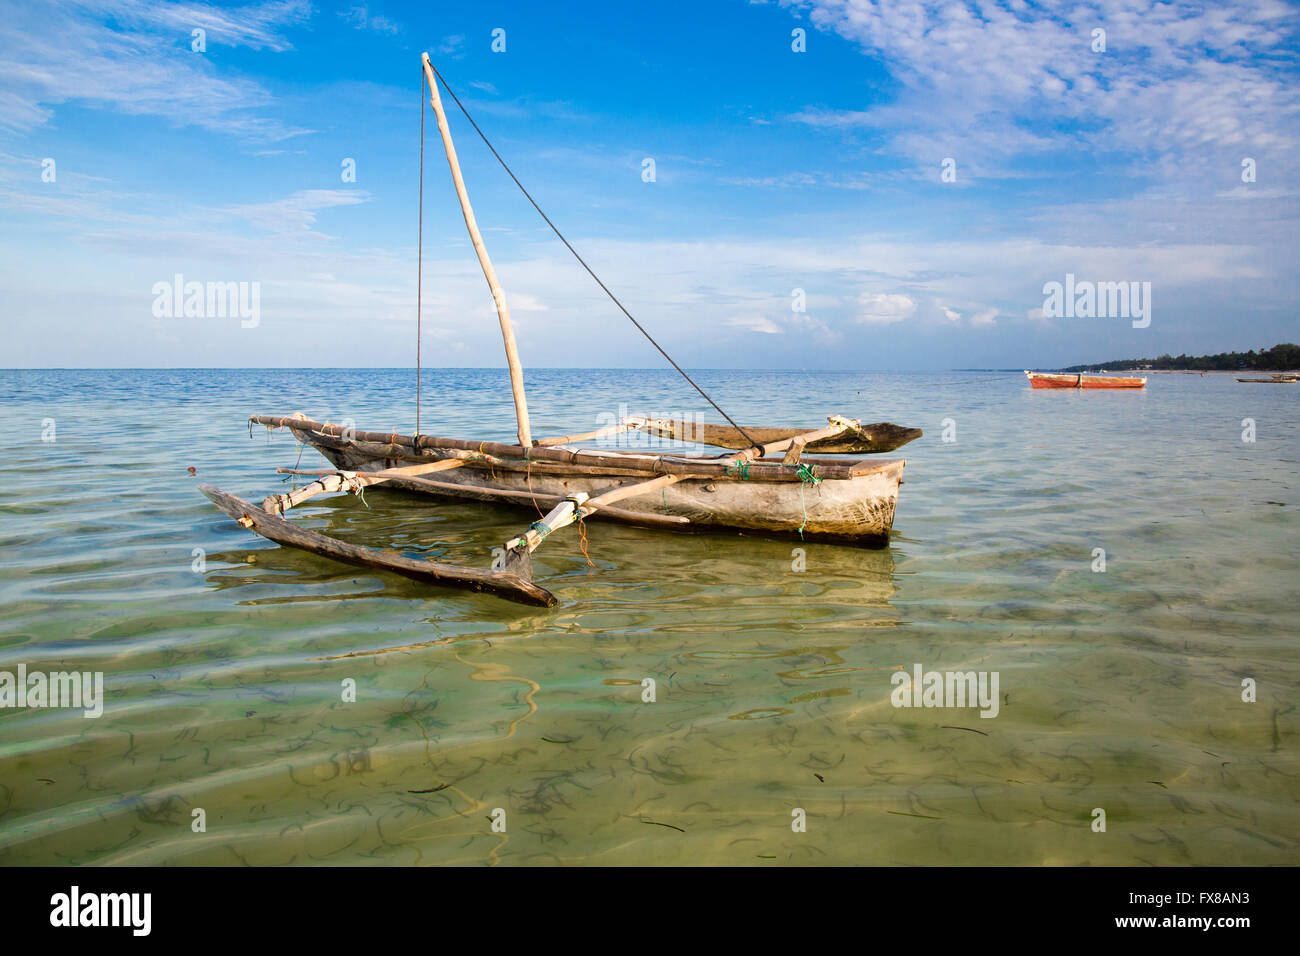 A small dhow moored on a lagoon on the coast of Zanzibar East Africa - Stock Image